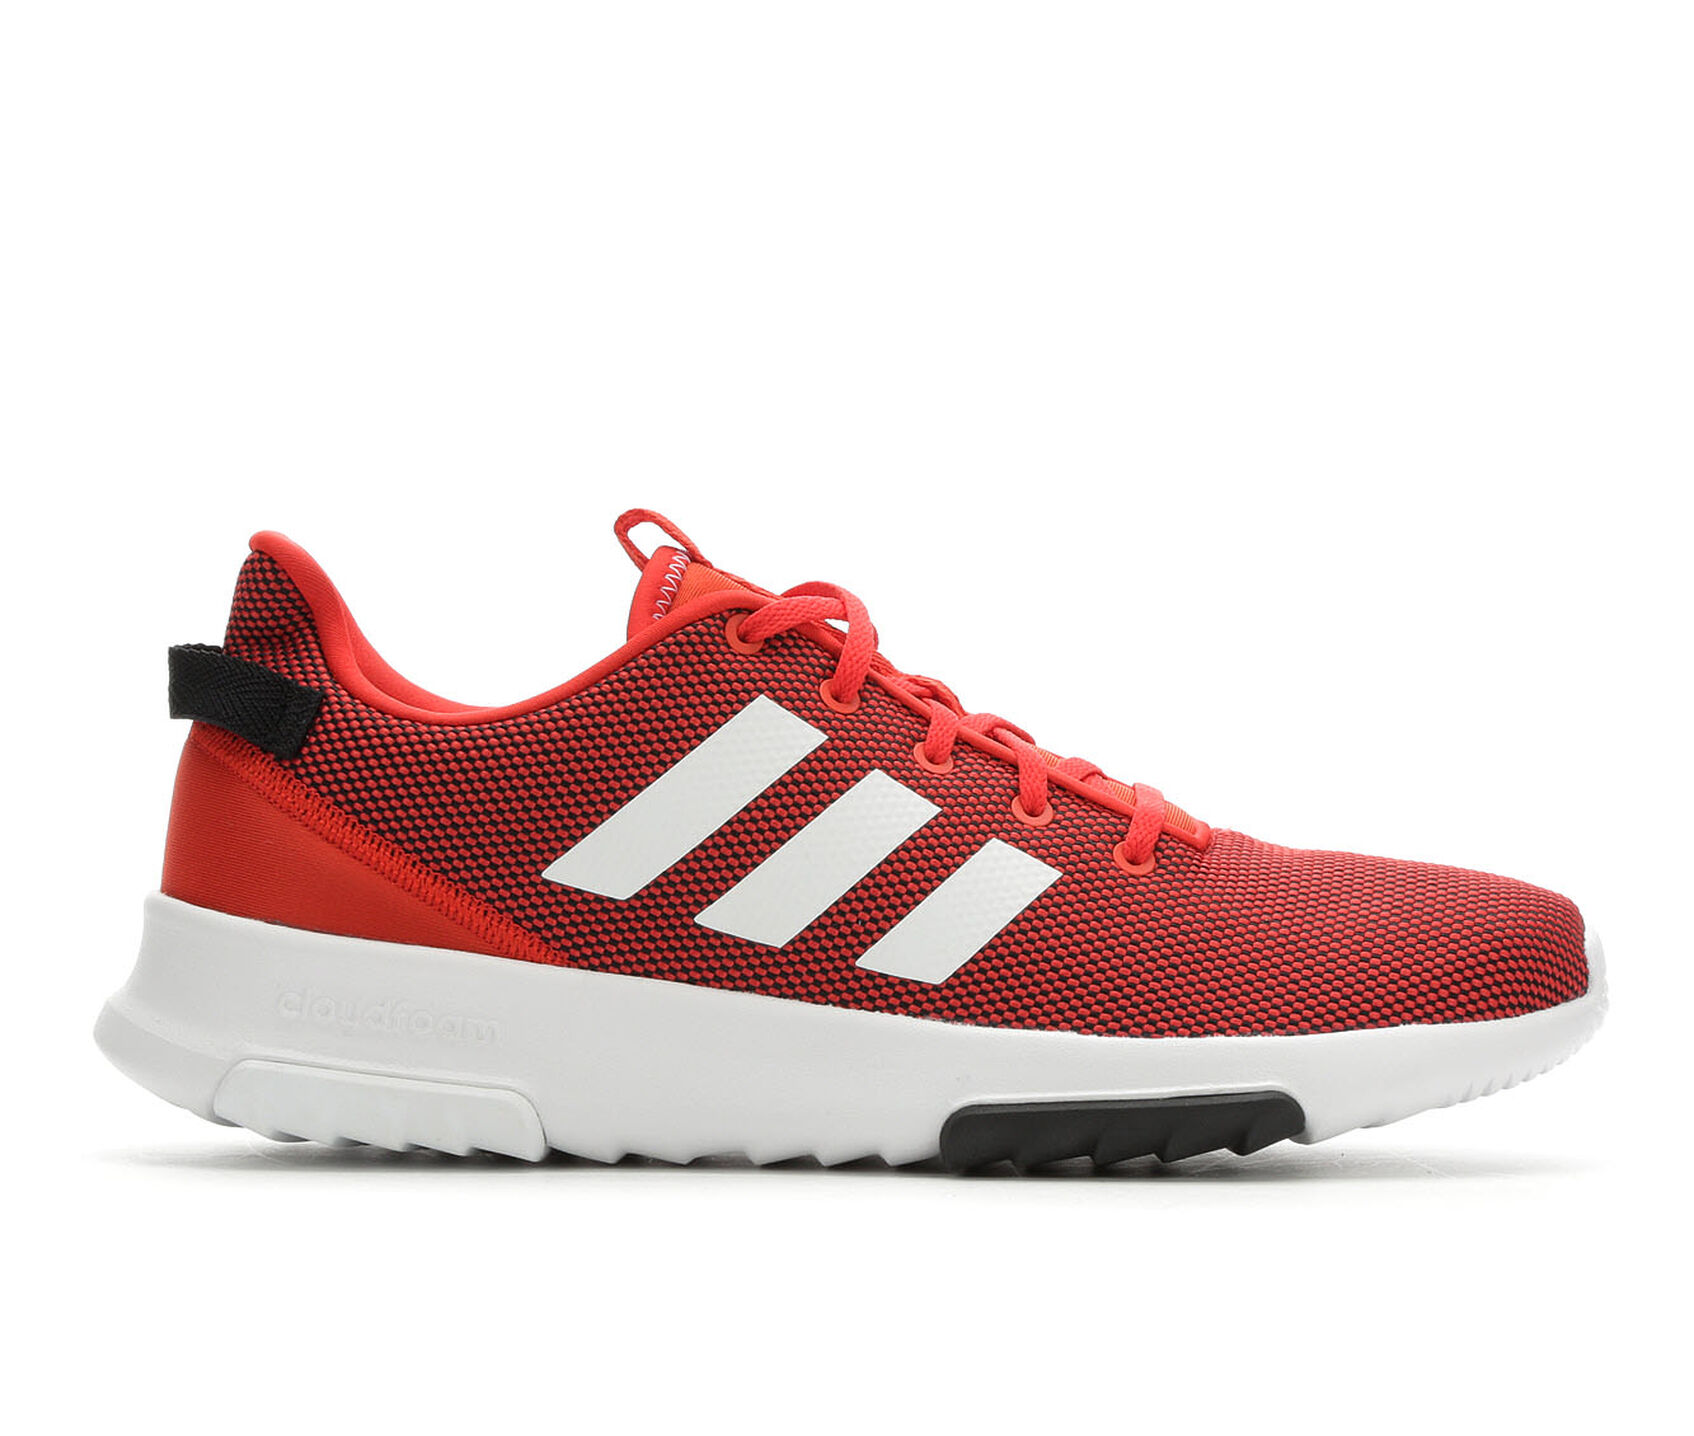 outlet store a3074 44e32 Mens Adidas Cloudfoam Racer TR Running Shoes  Shoe Carnival